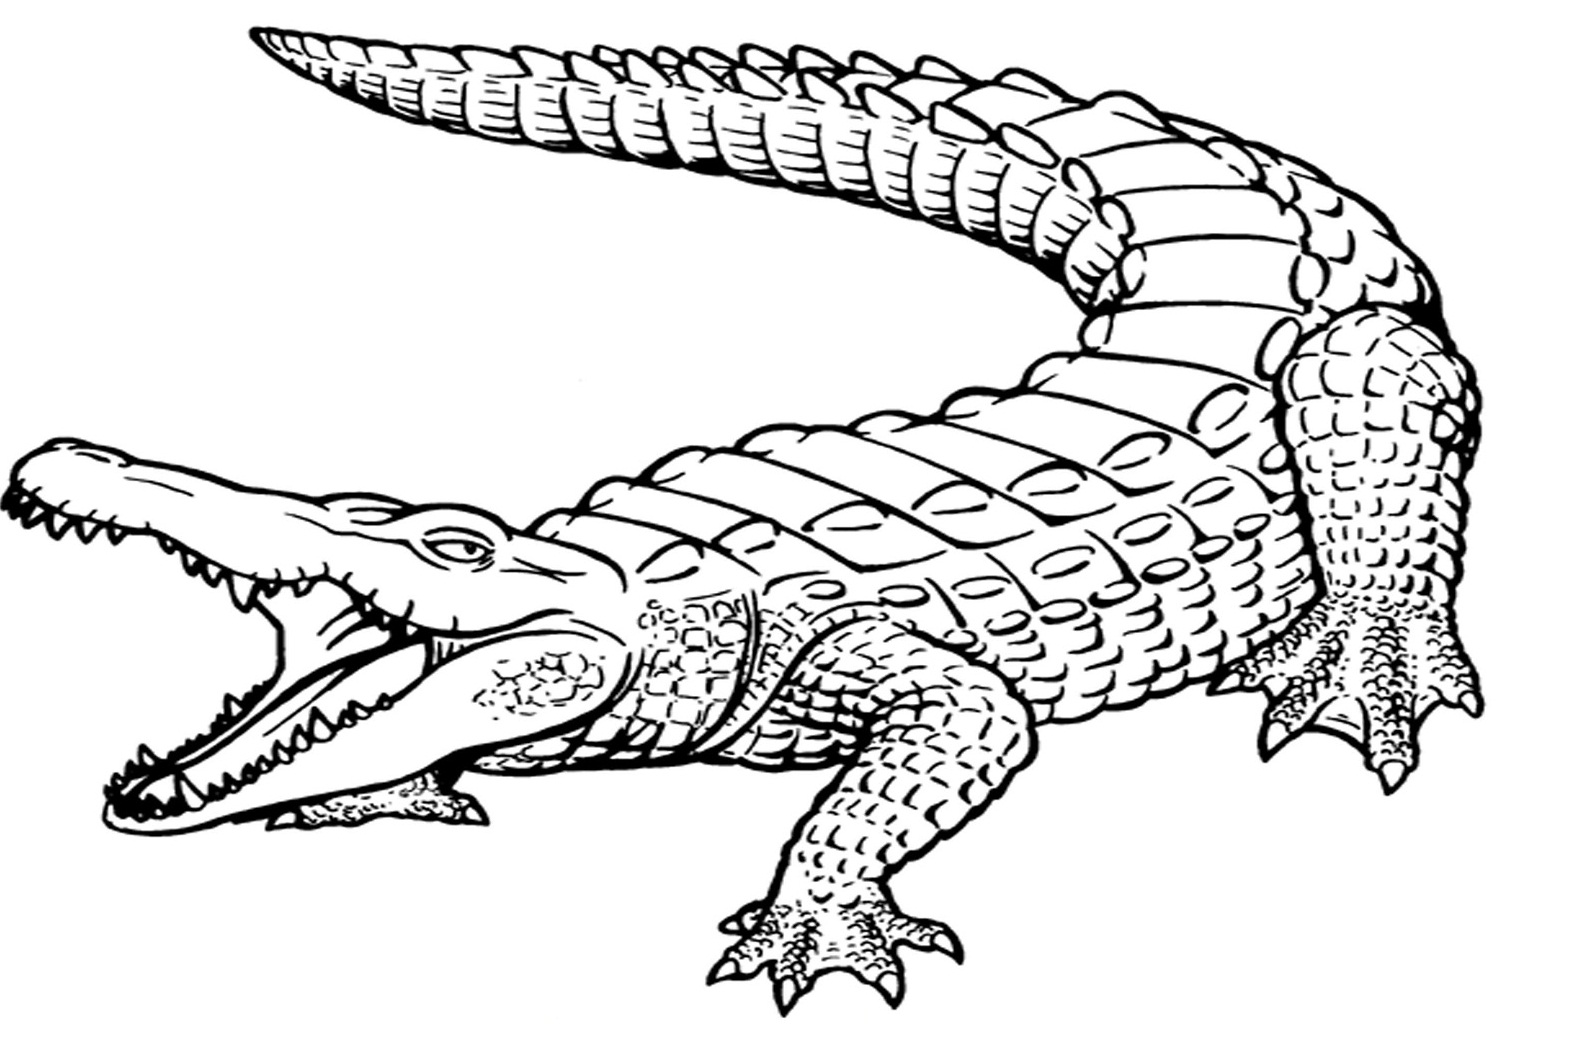 crocidile coloring pages for kids | Crocodile Drawing For Kids at GetDrawings.com | Free for ...